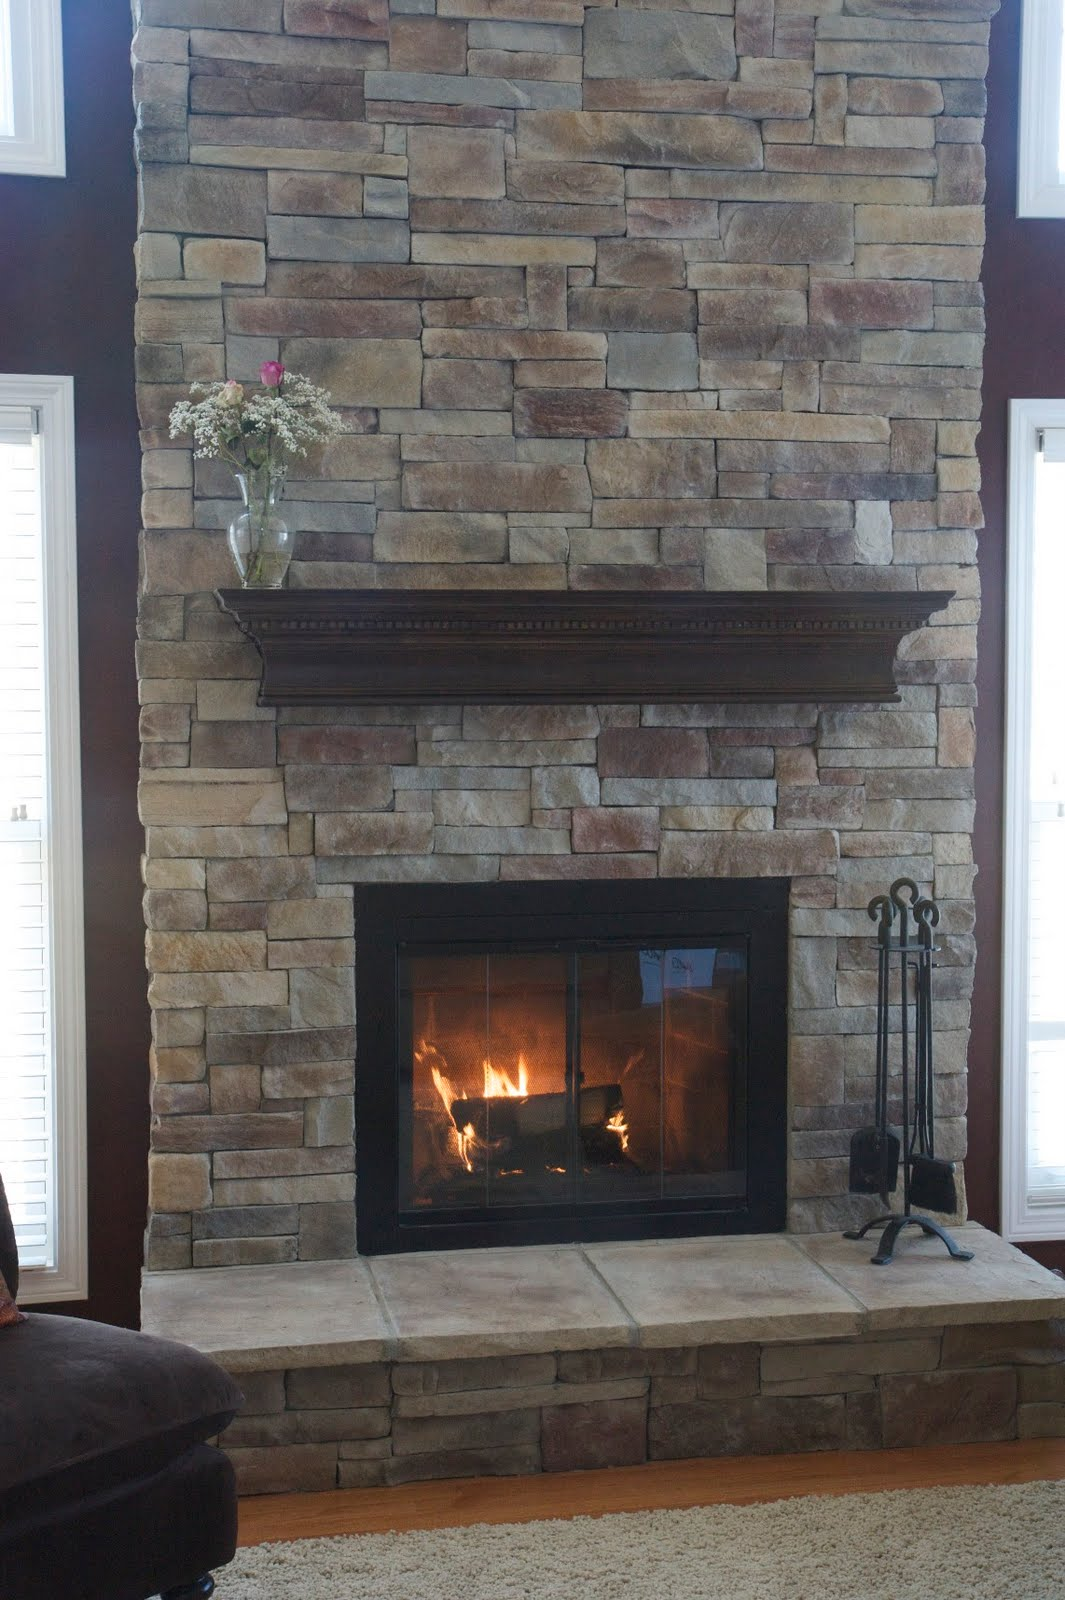 North Star Stone Stone Fireplaces & Stone Exteriors Did